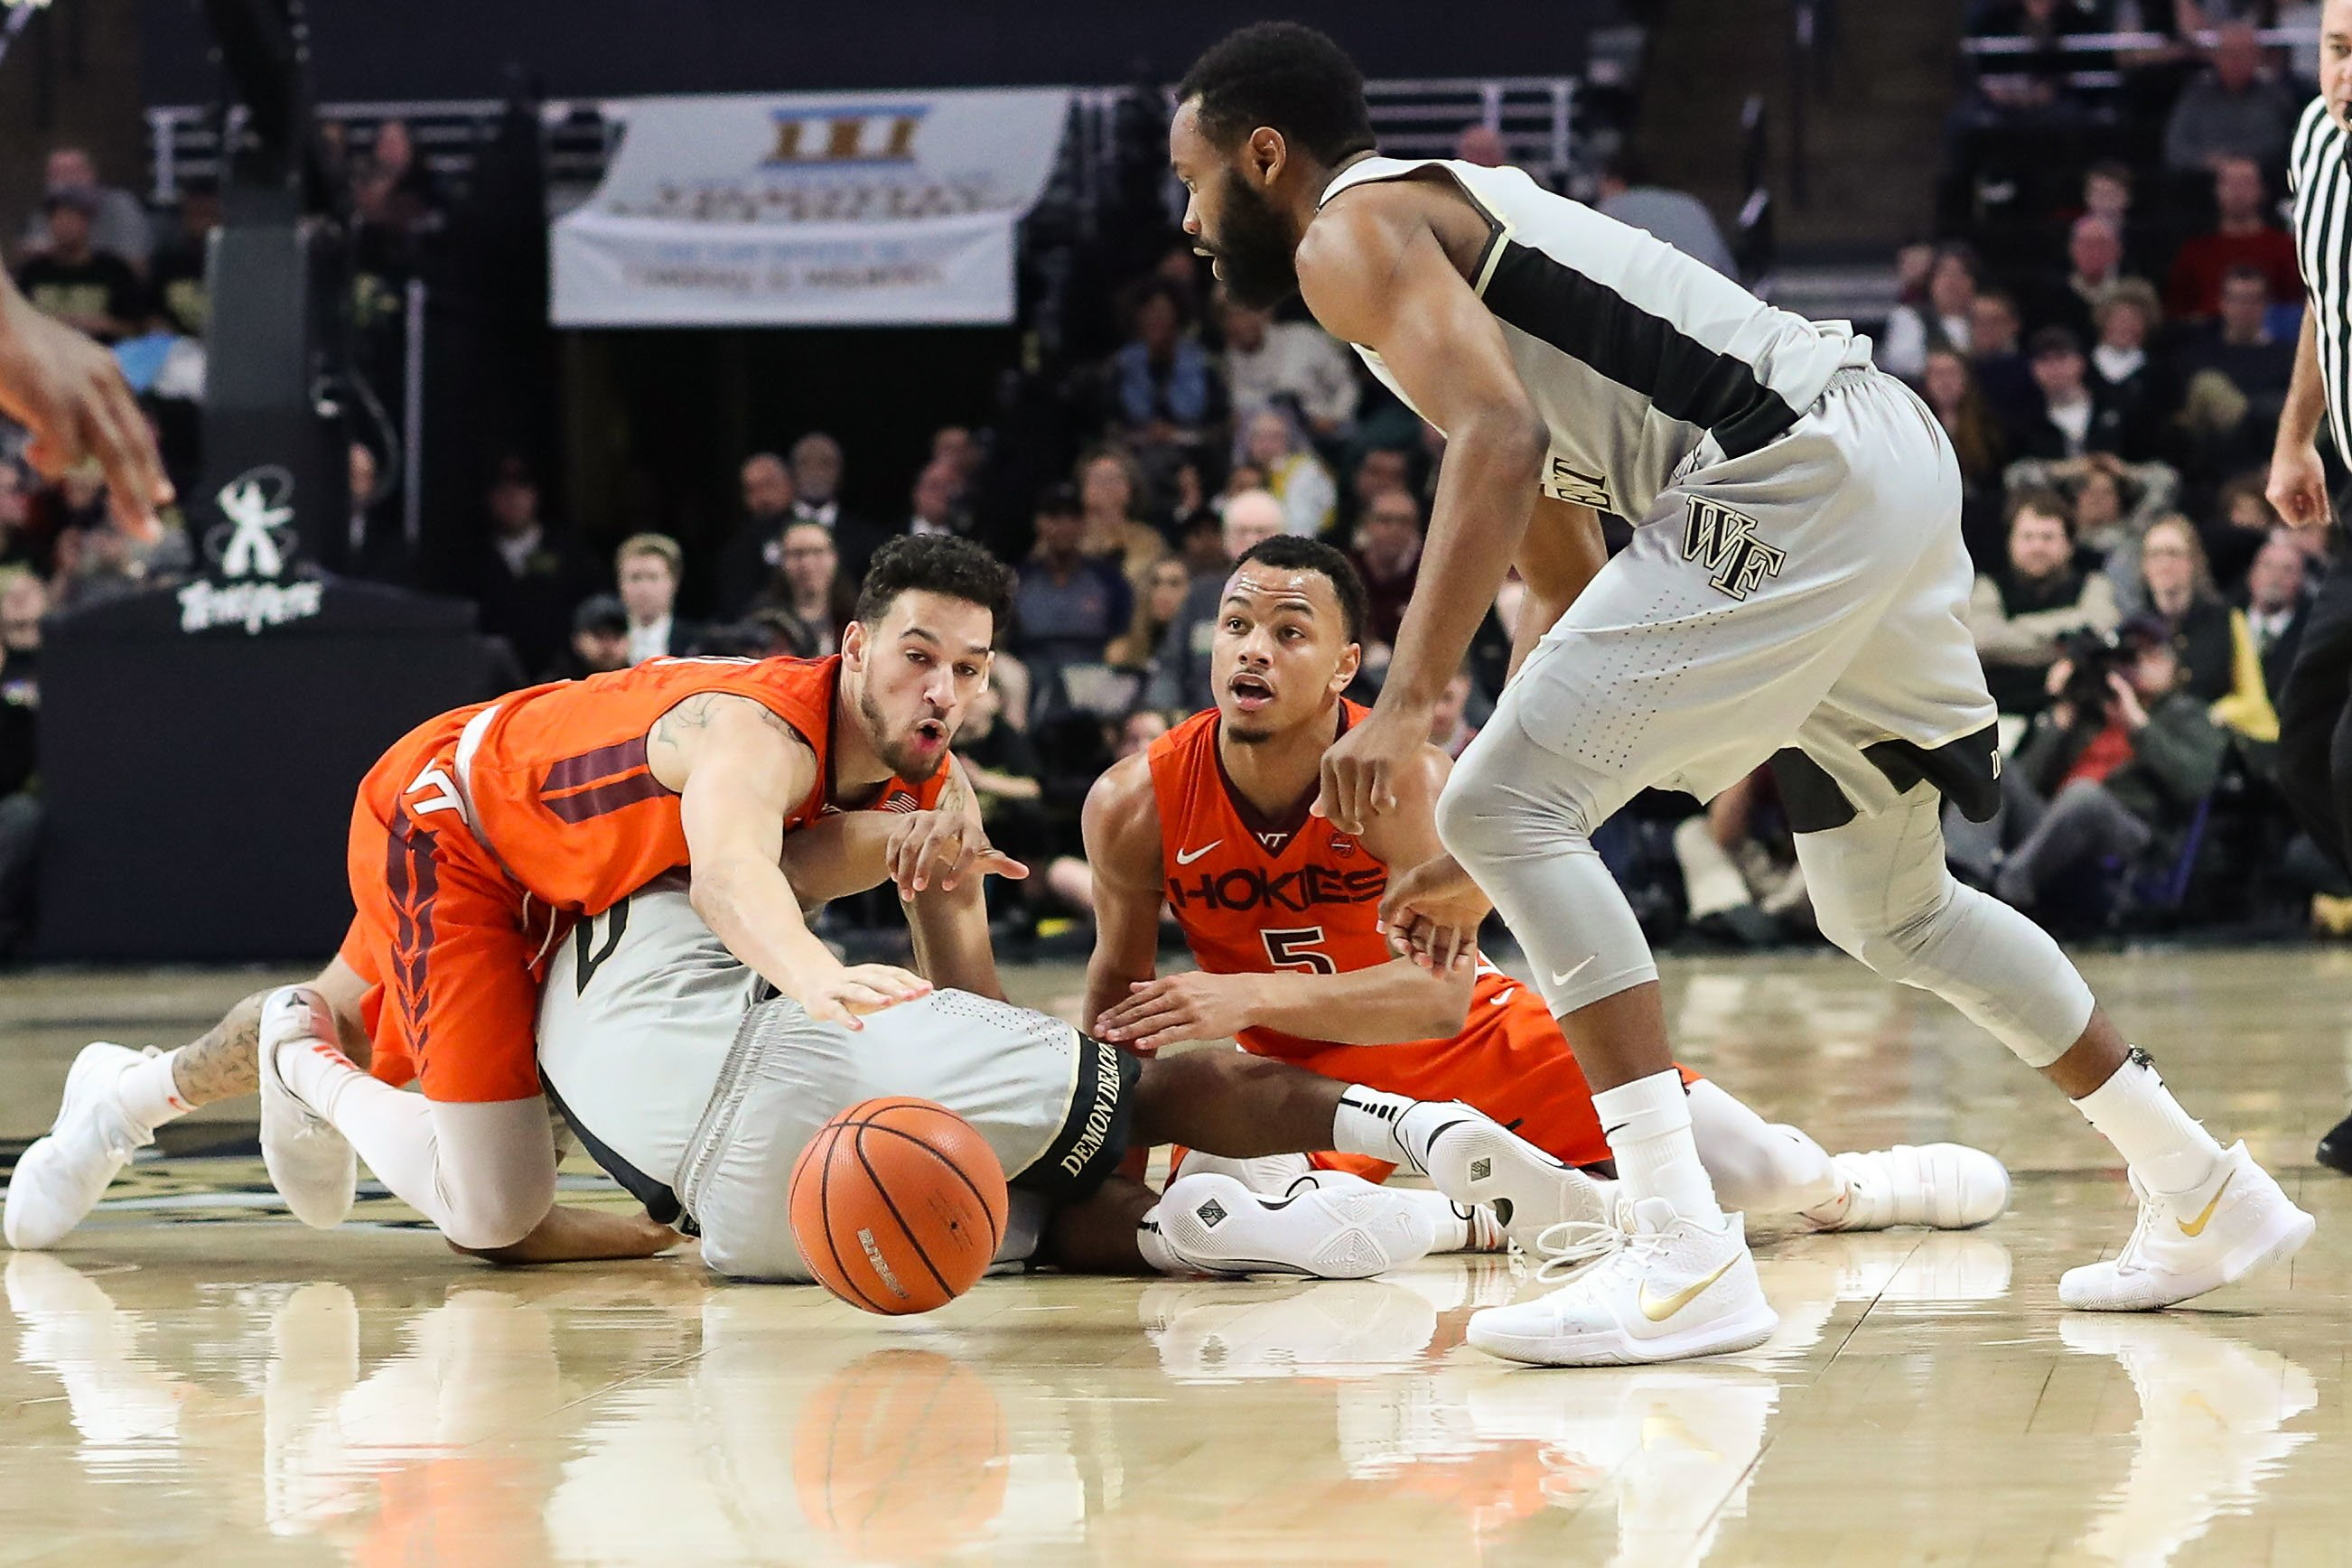 Virginia Tech beats Wake Forest 83-75 on road in ACC play